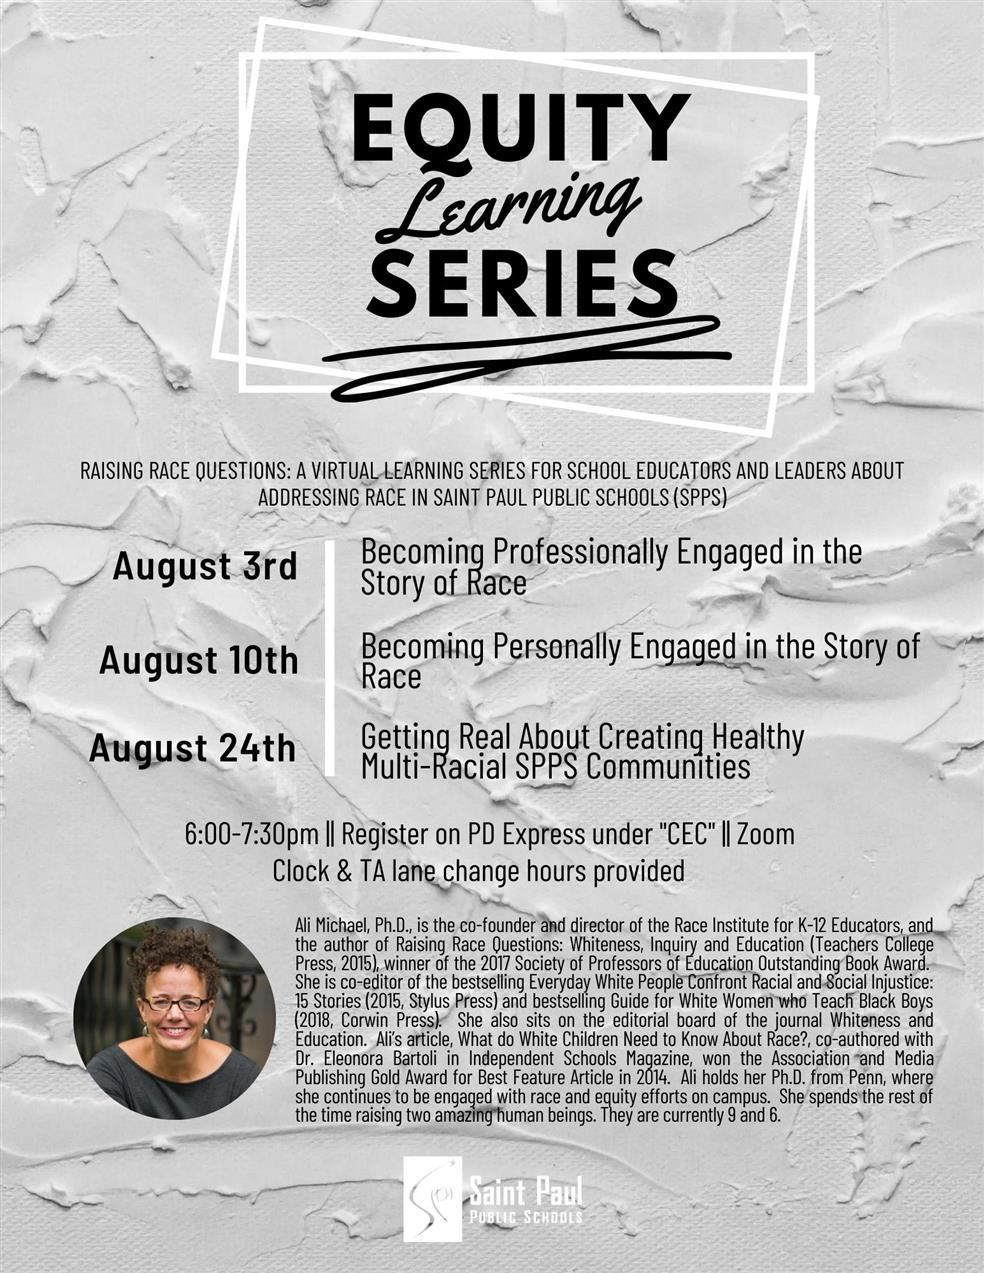 August Equity Learning Series: Raising Race Questions: A Virtual Learning Series for School Educators and Leaders About Addressing Race in Saint Paul Public Schools (SPPS)